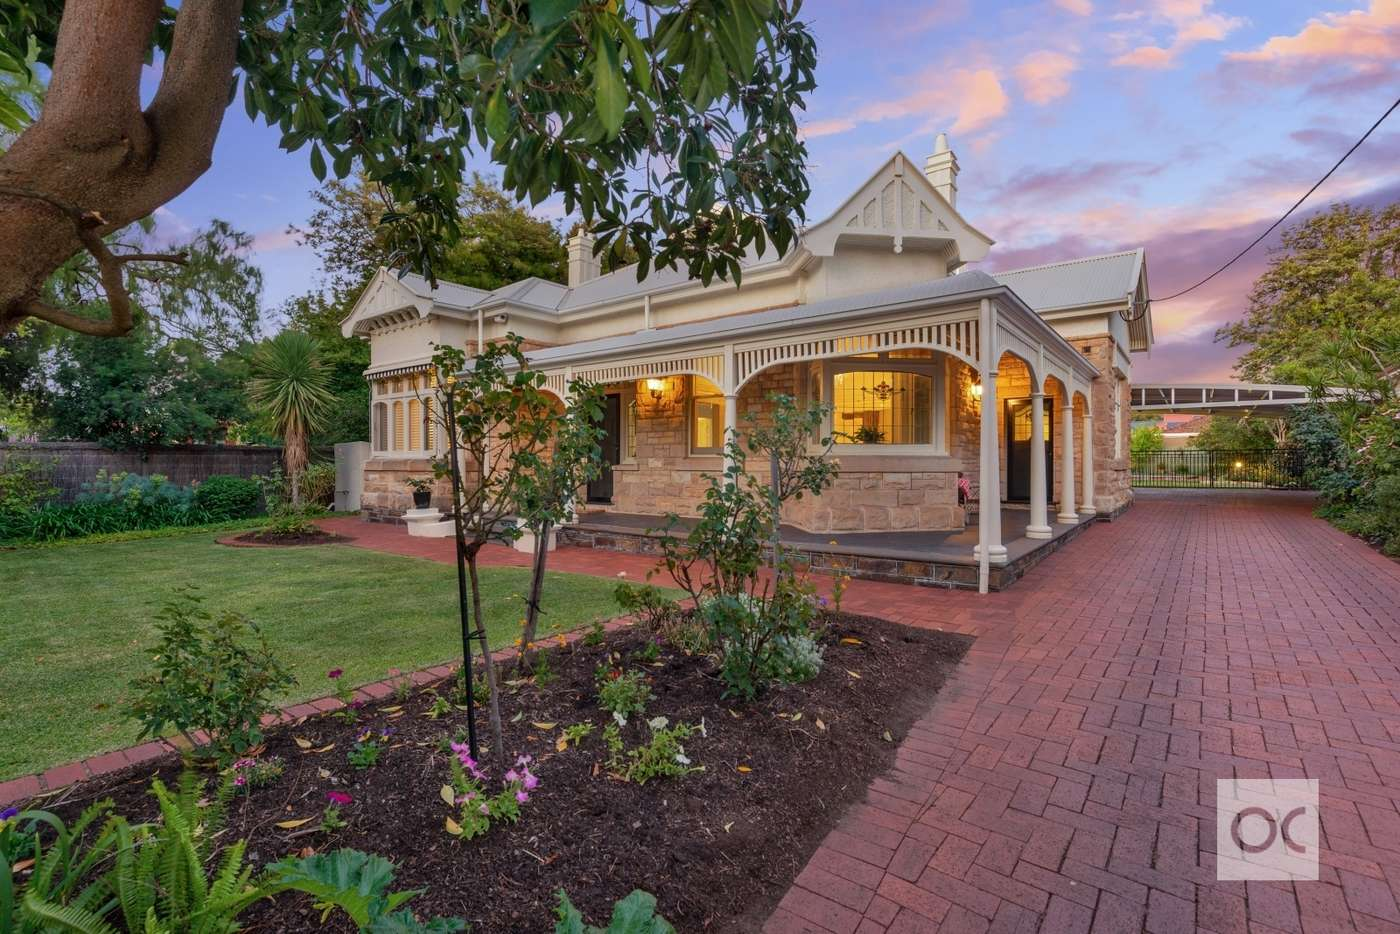 Main view of Homely house listing, 91 Cambridge Terrace, Malvern SA 5061